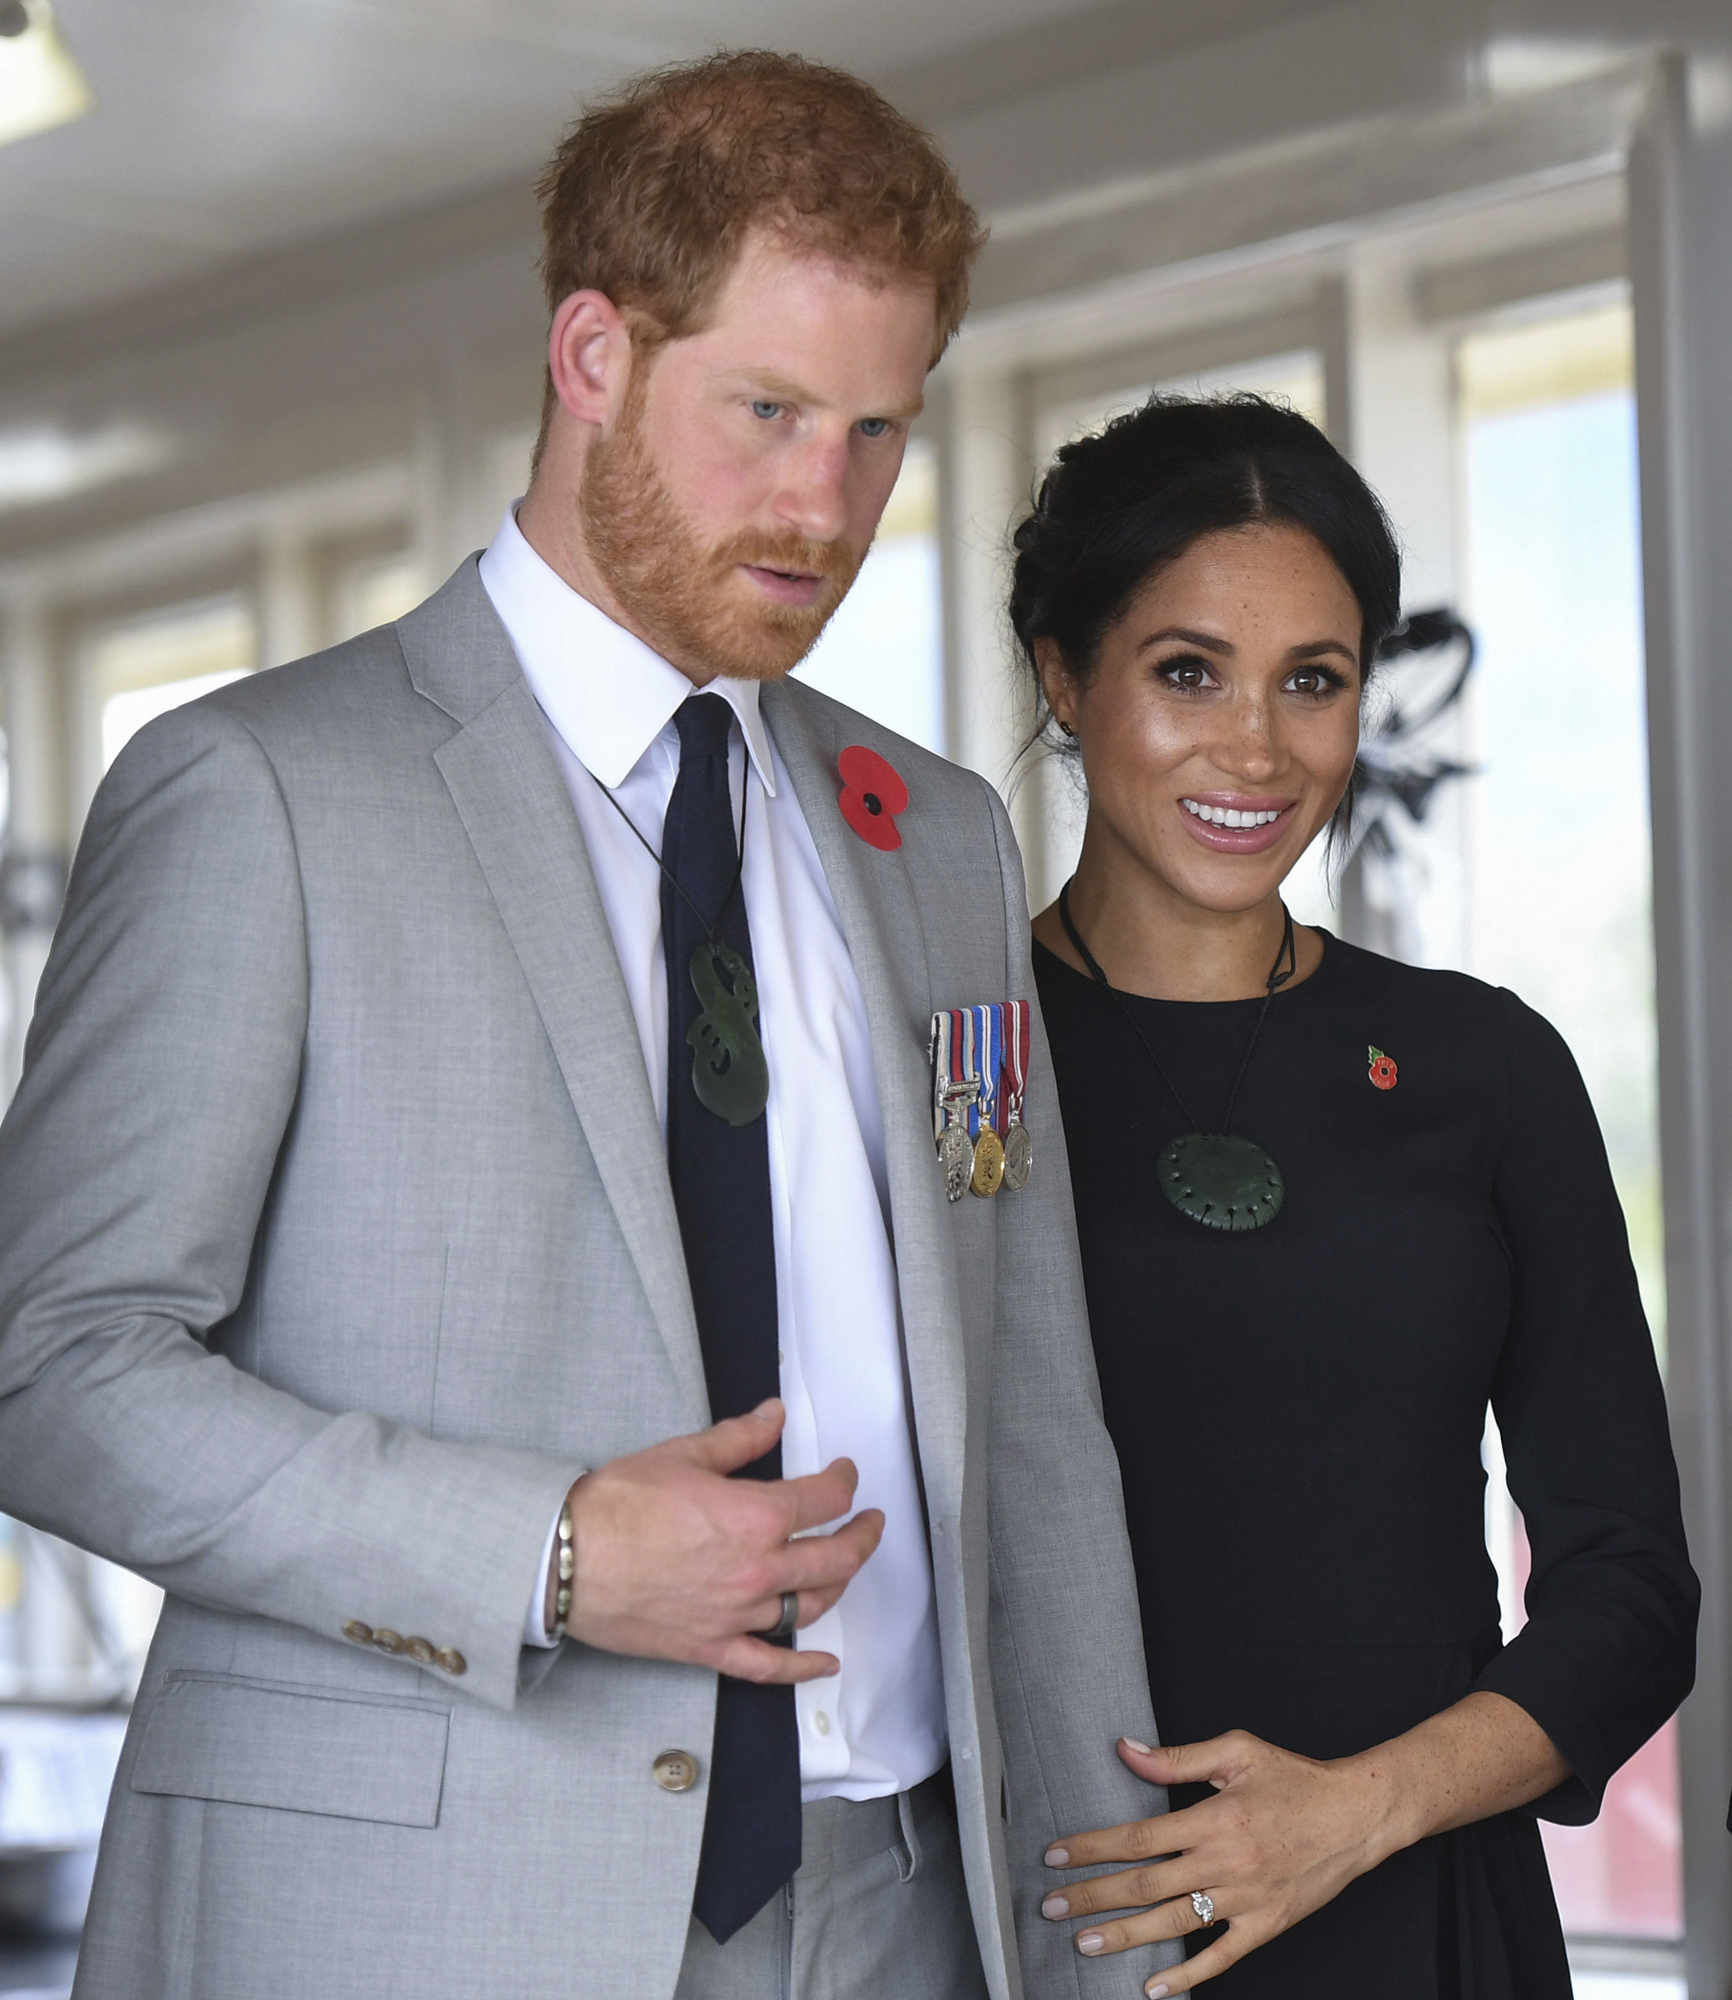 Royal tour of New Zealand - Day Four